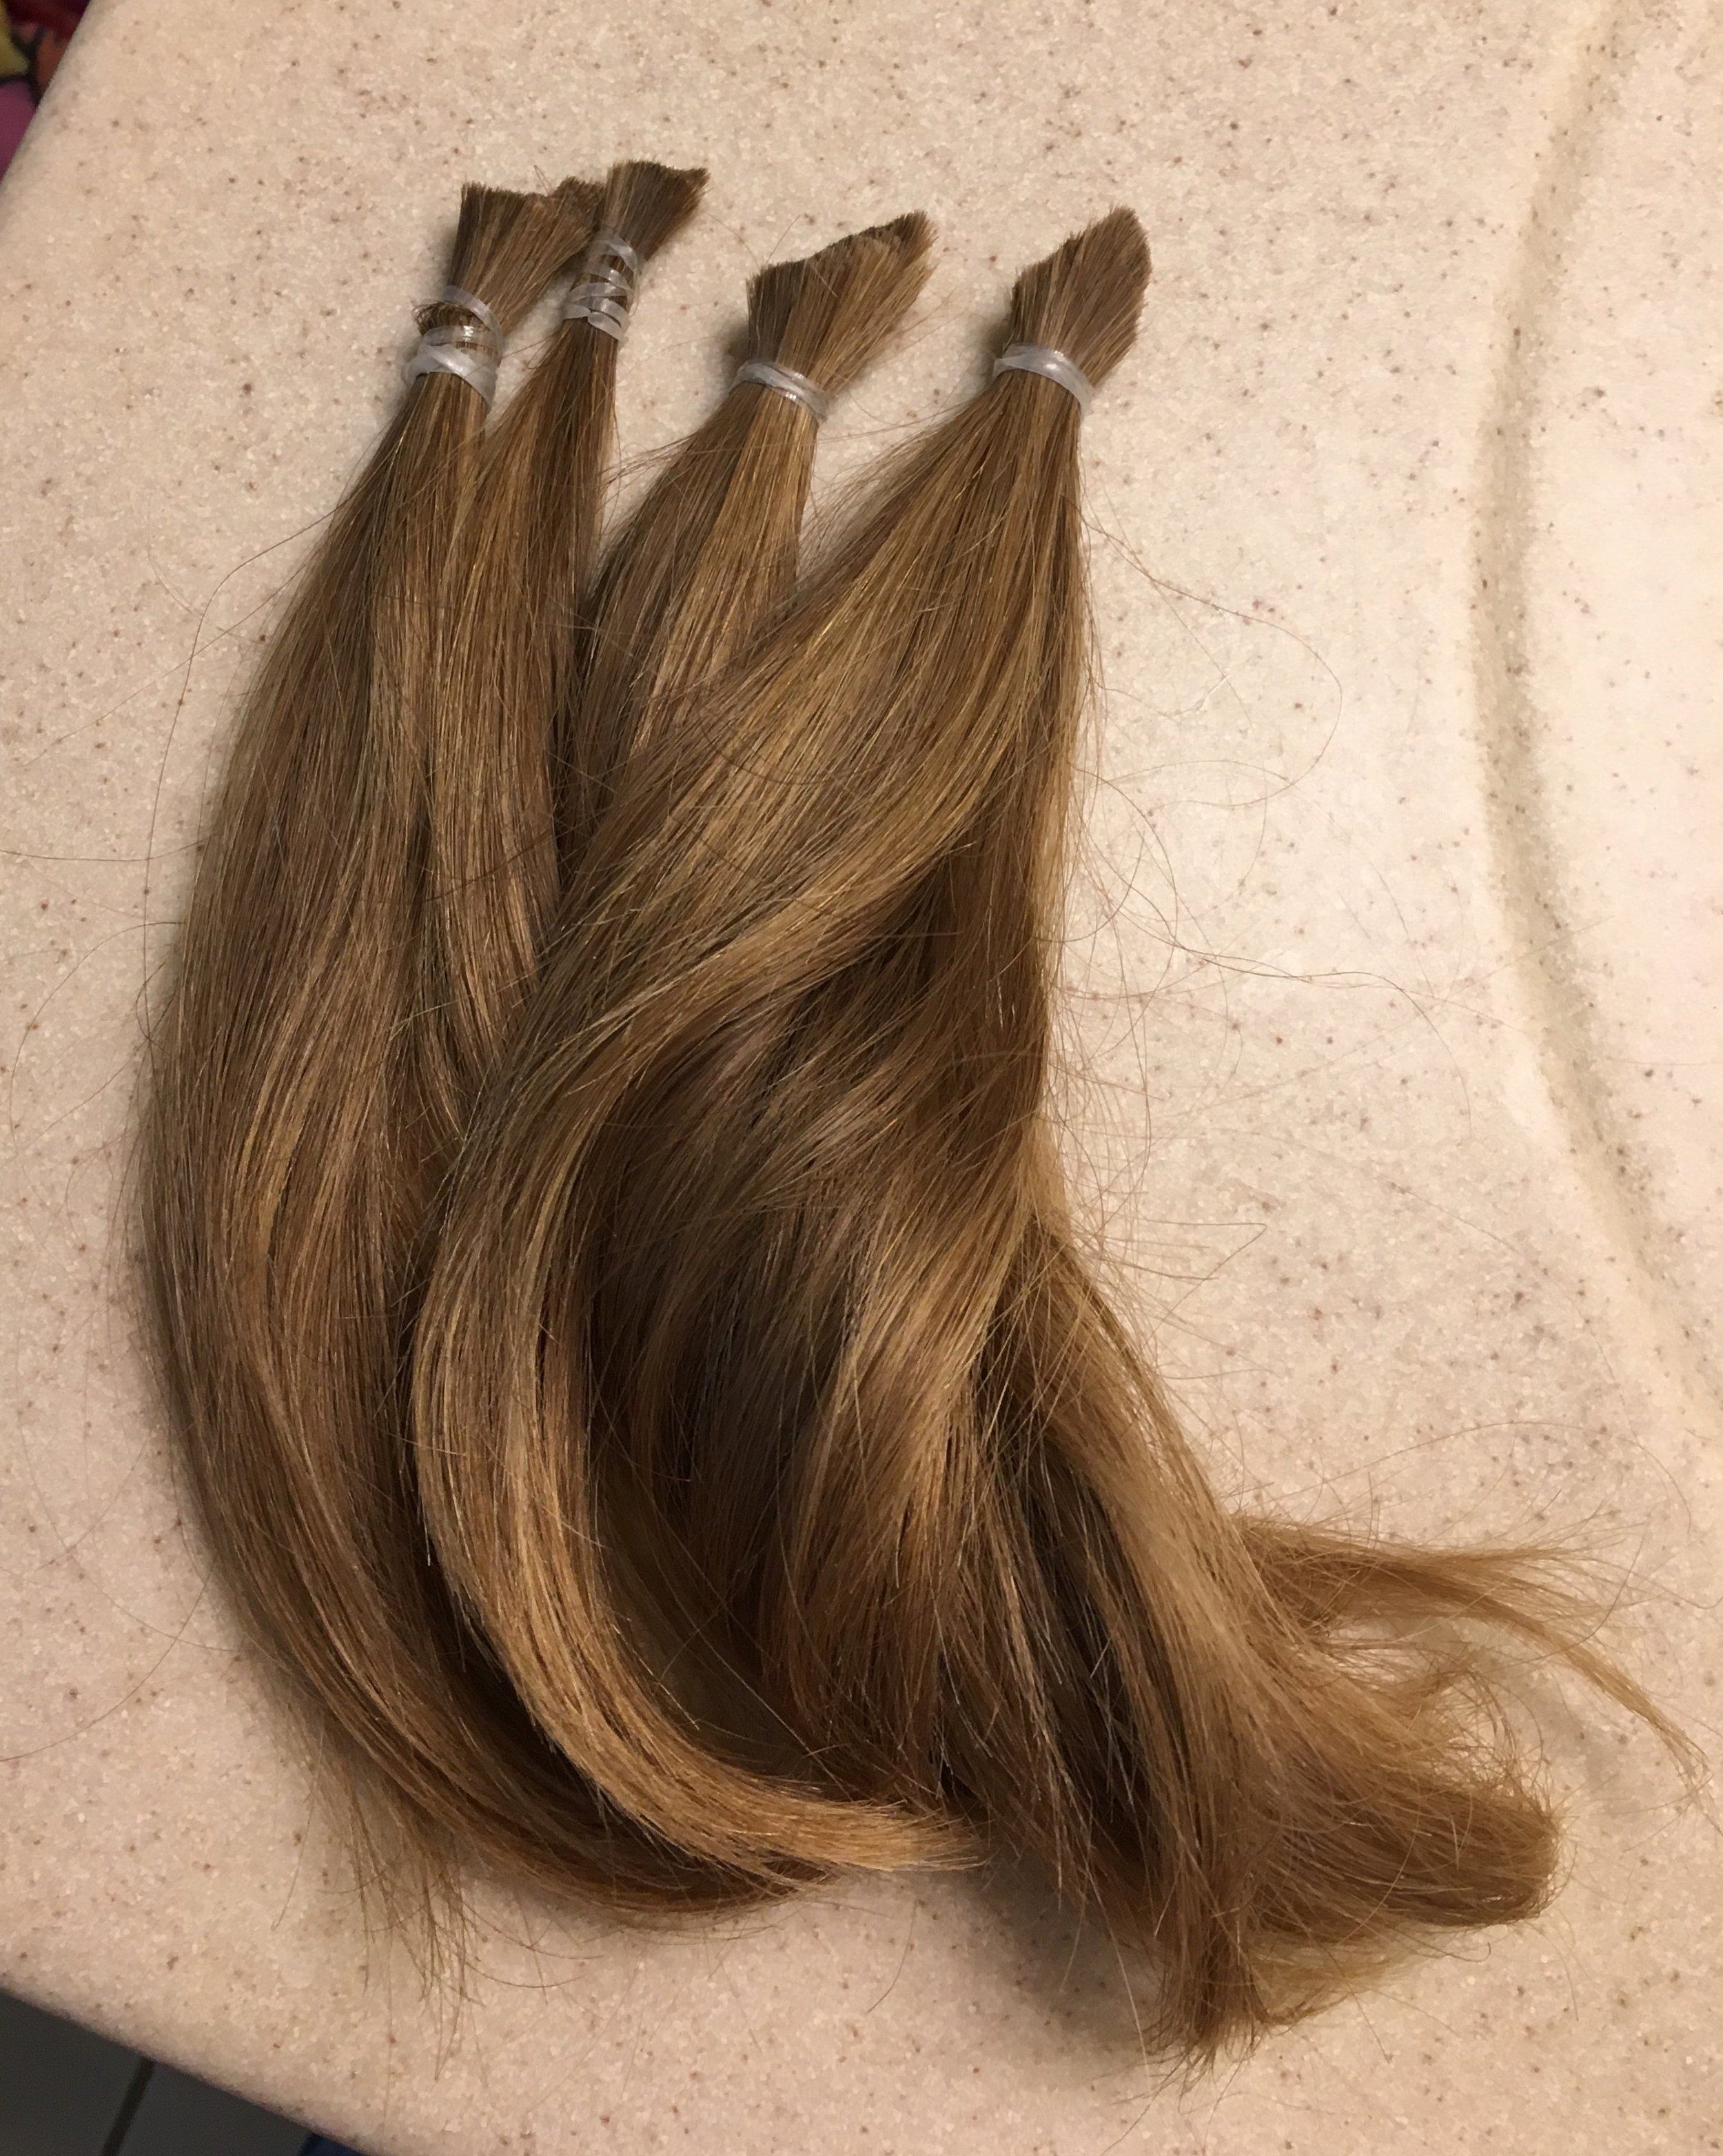 Finally donated my hair - 10 inches gone!